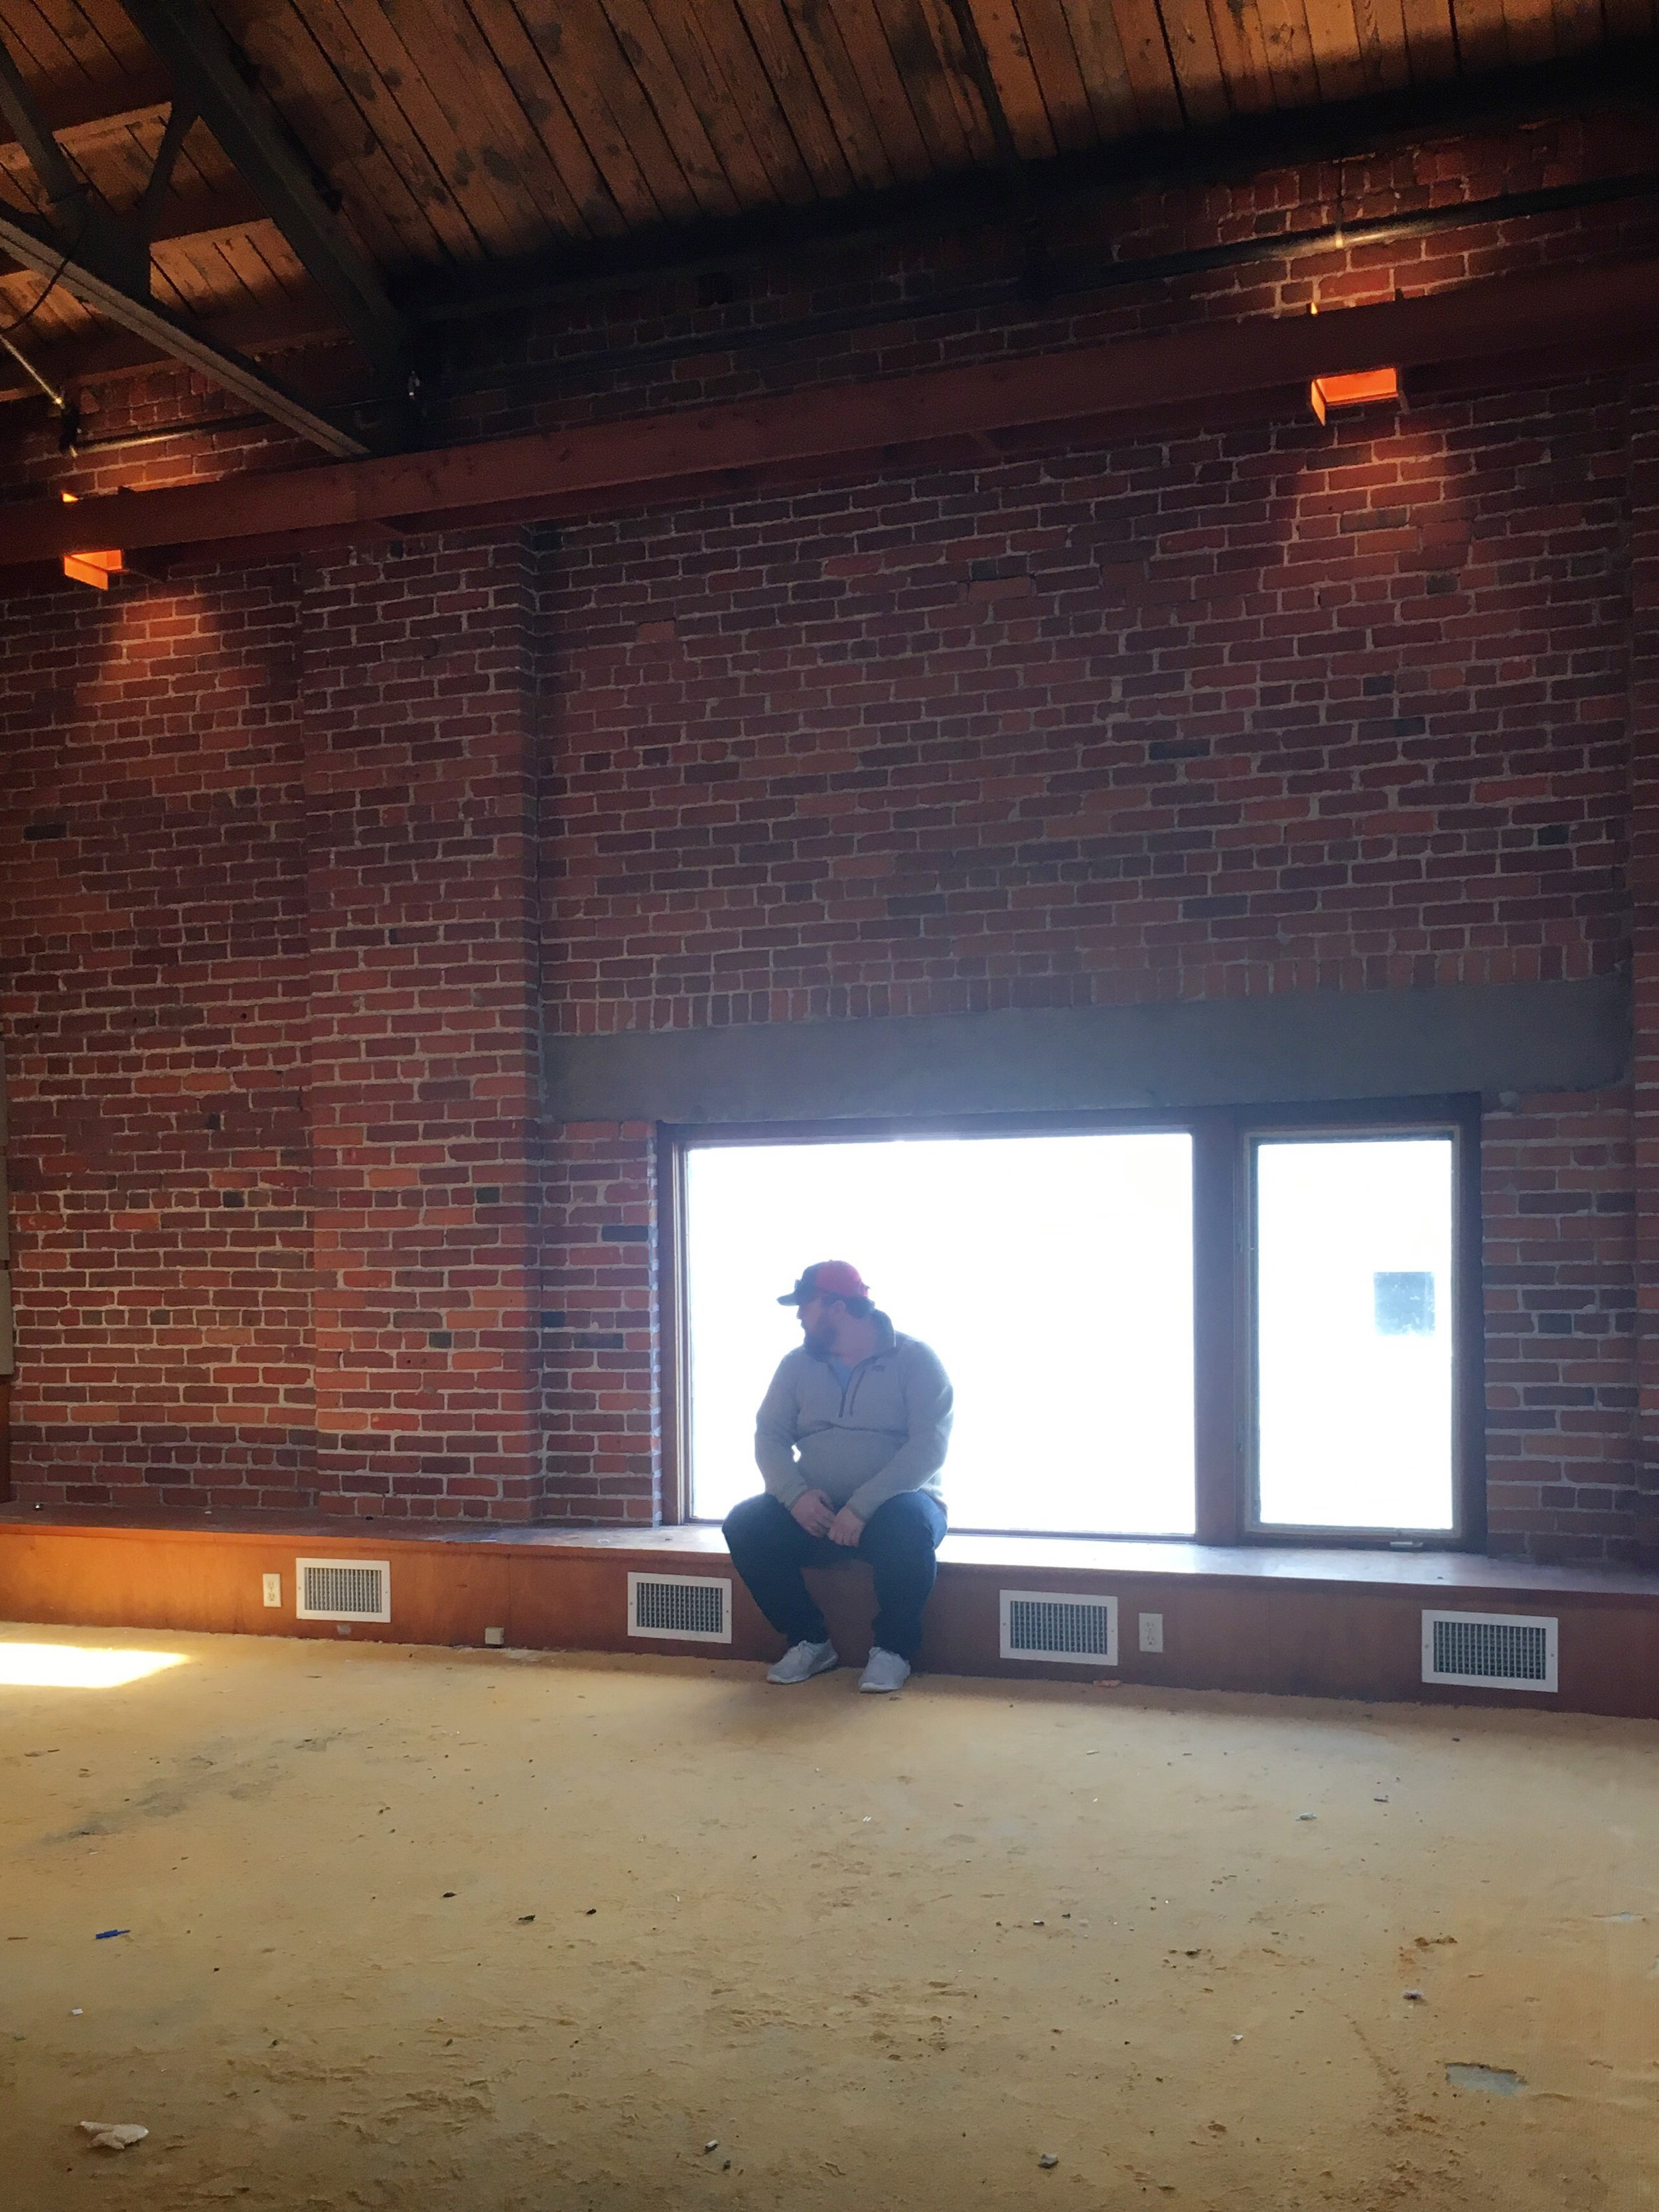 My partner and business coach, taking in the scene the first day we stepped into the space Mar. 12.